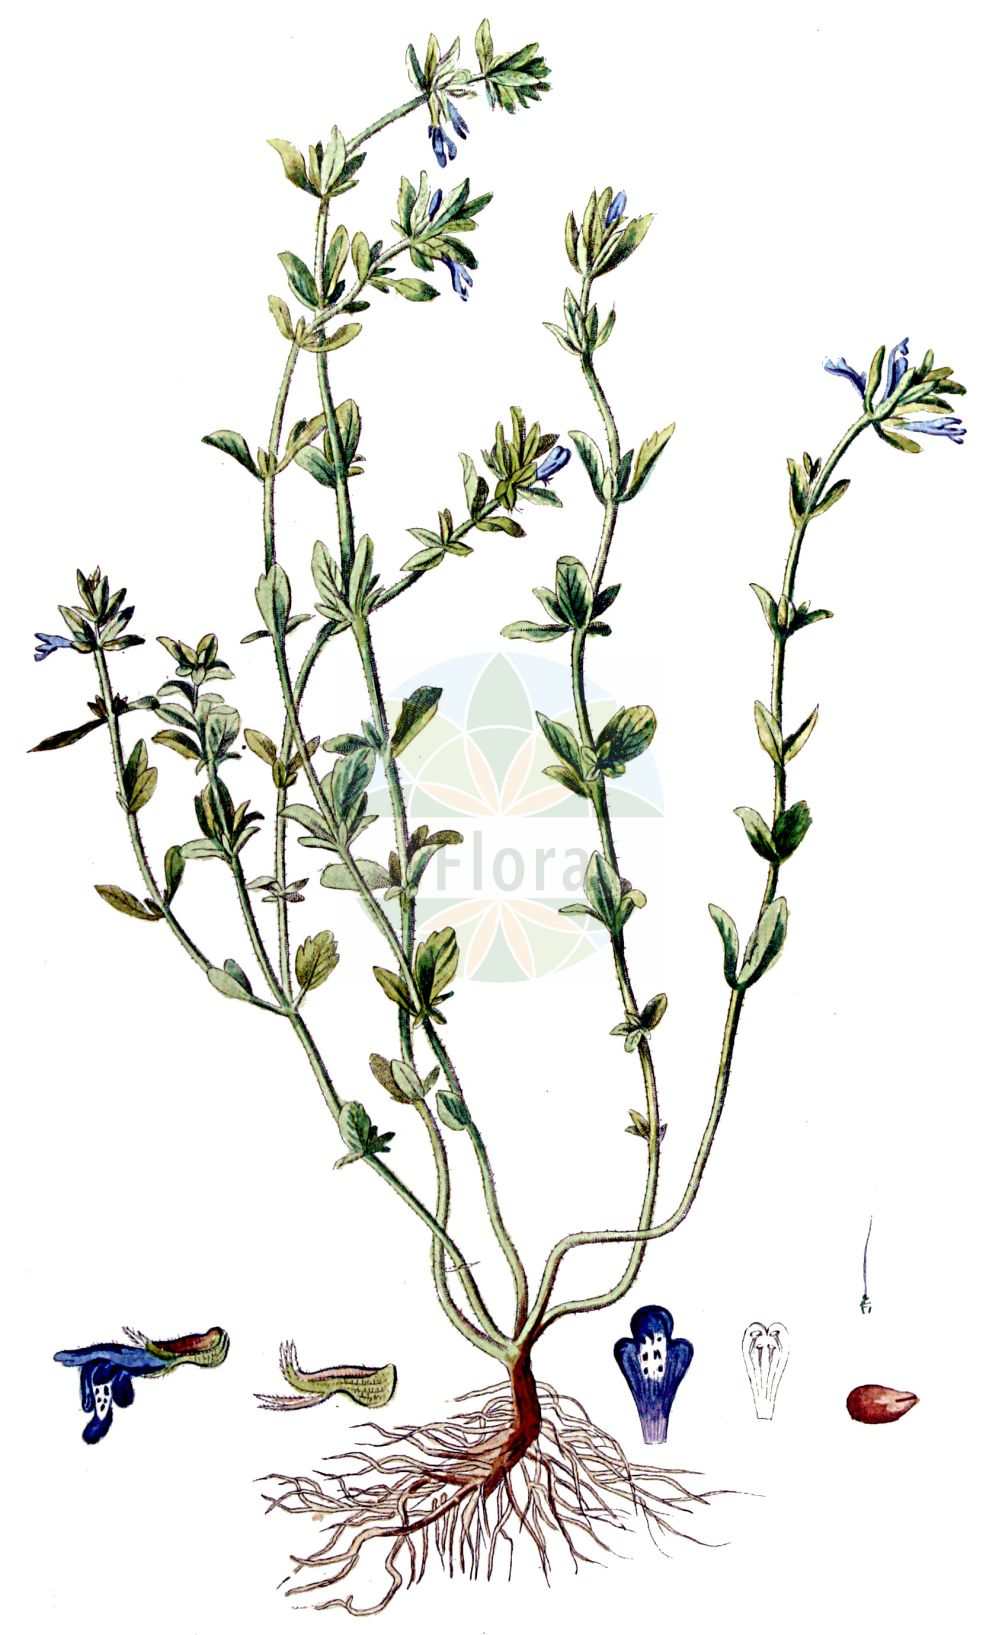 Historische Abbildung von Clinopodium acinos (Feld-Steinquendel - Basil Thyme). Das Bild zeigt Blatt, Bluete, Frucht und Same. ---- Historical Drawing of Clinopodium acinos (Feld-Steinquendel - Basil Thyme).The image is showing leaf, flower, fruit and seed.(Clinopodium acinos,Feld-Steinquendel,Basil Thyme,Acinos acinos,Acinos acuminatus,Acinos arvensis,Acinos clinopodiifacie,Acinos eglandulosus,Acinos inflectus,Acinos schizodontus,Acinos subcrispus,Acinos thymoides,Acinos villosus,Calamintha acinos,Calamintha heterophylla,Calamintha villosa,Clinopodium acinos,Faucibarba acinos,Melissa acinos,Melissa arvensis,Satureja acinos,Thymus acinos,Thymus arvensis,Thymus canescens,Thymus concinnus,Thymus gibbosus,Feld-Steinquendel,Gewoehnlicher Steinquendel,Stein-Bergminze,Basil Thyme,Mother-of-Thyme,Clinopodium,Wirbeldost,Calamint,Lamiaceae,Lippenbluetengewaechse,Lippenbluetler,Nettle family,Blatt,Bluete,Frucht,Same,leaf,flower,fruit,seed,Kops (1800-1934))